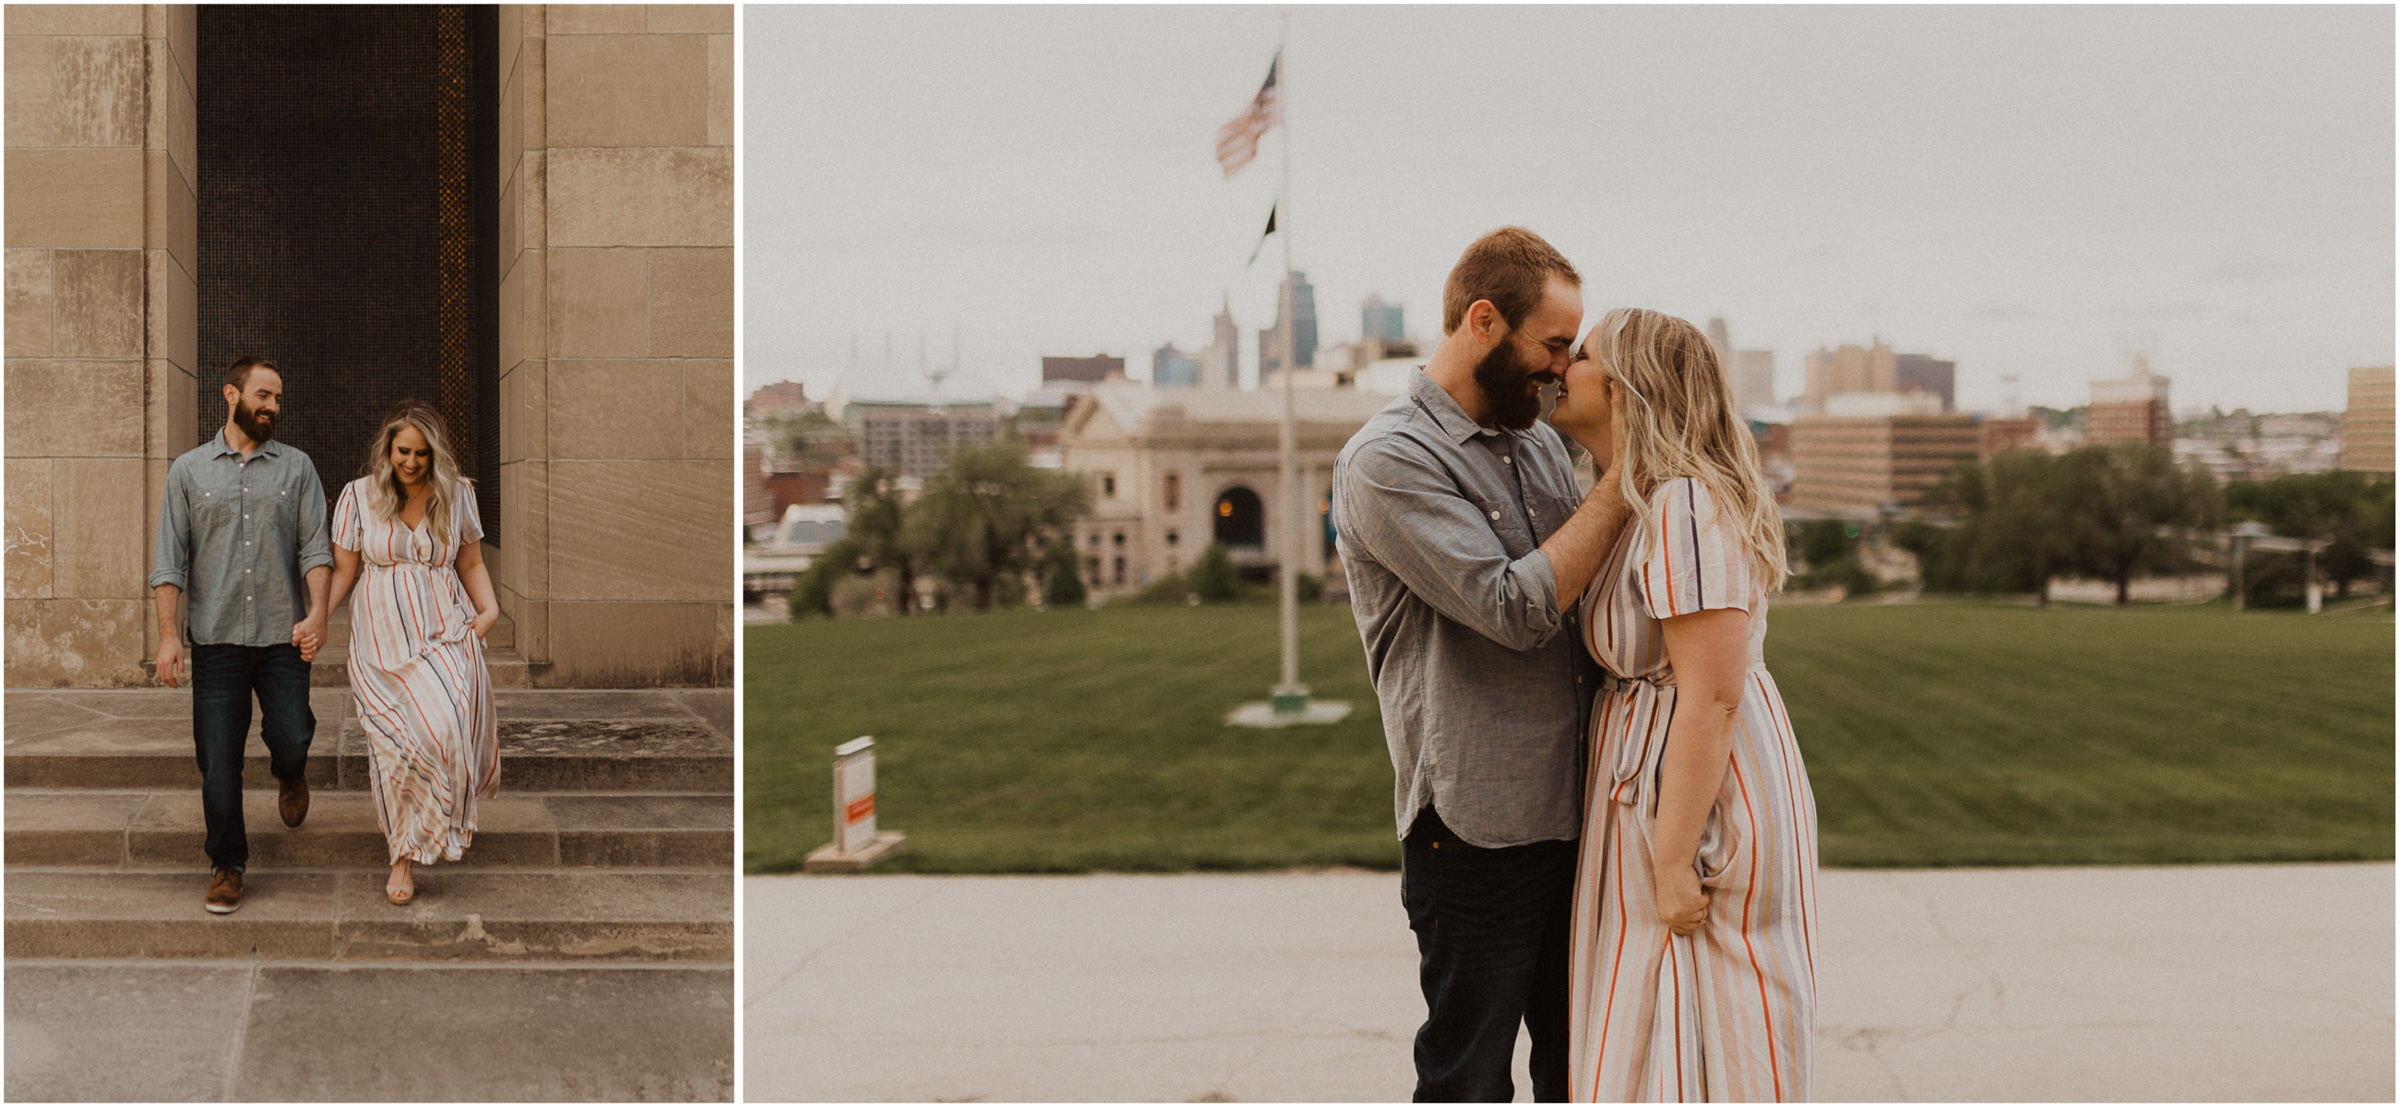 alyssa barletter photography kansas city liberty memorial loose park engagement session photographer-15.jpg